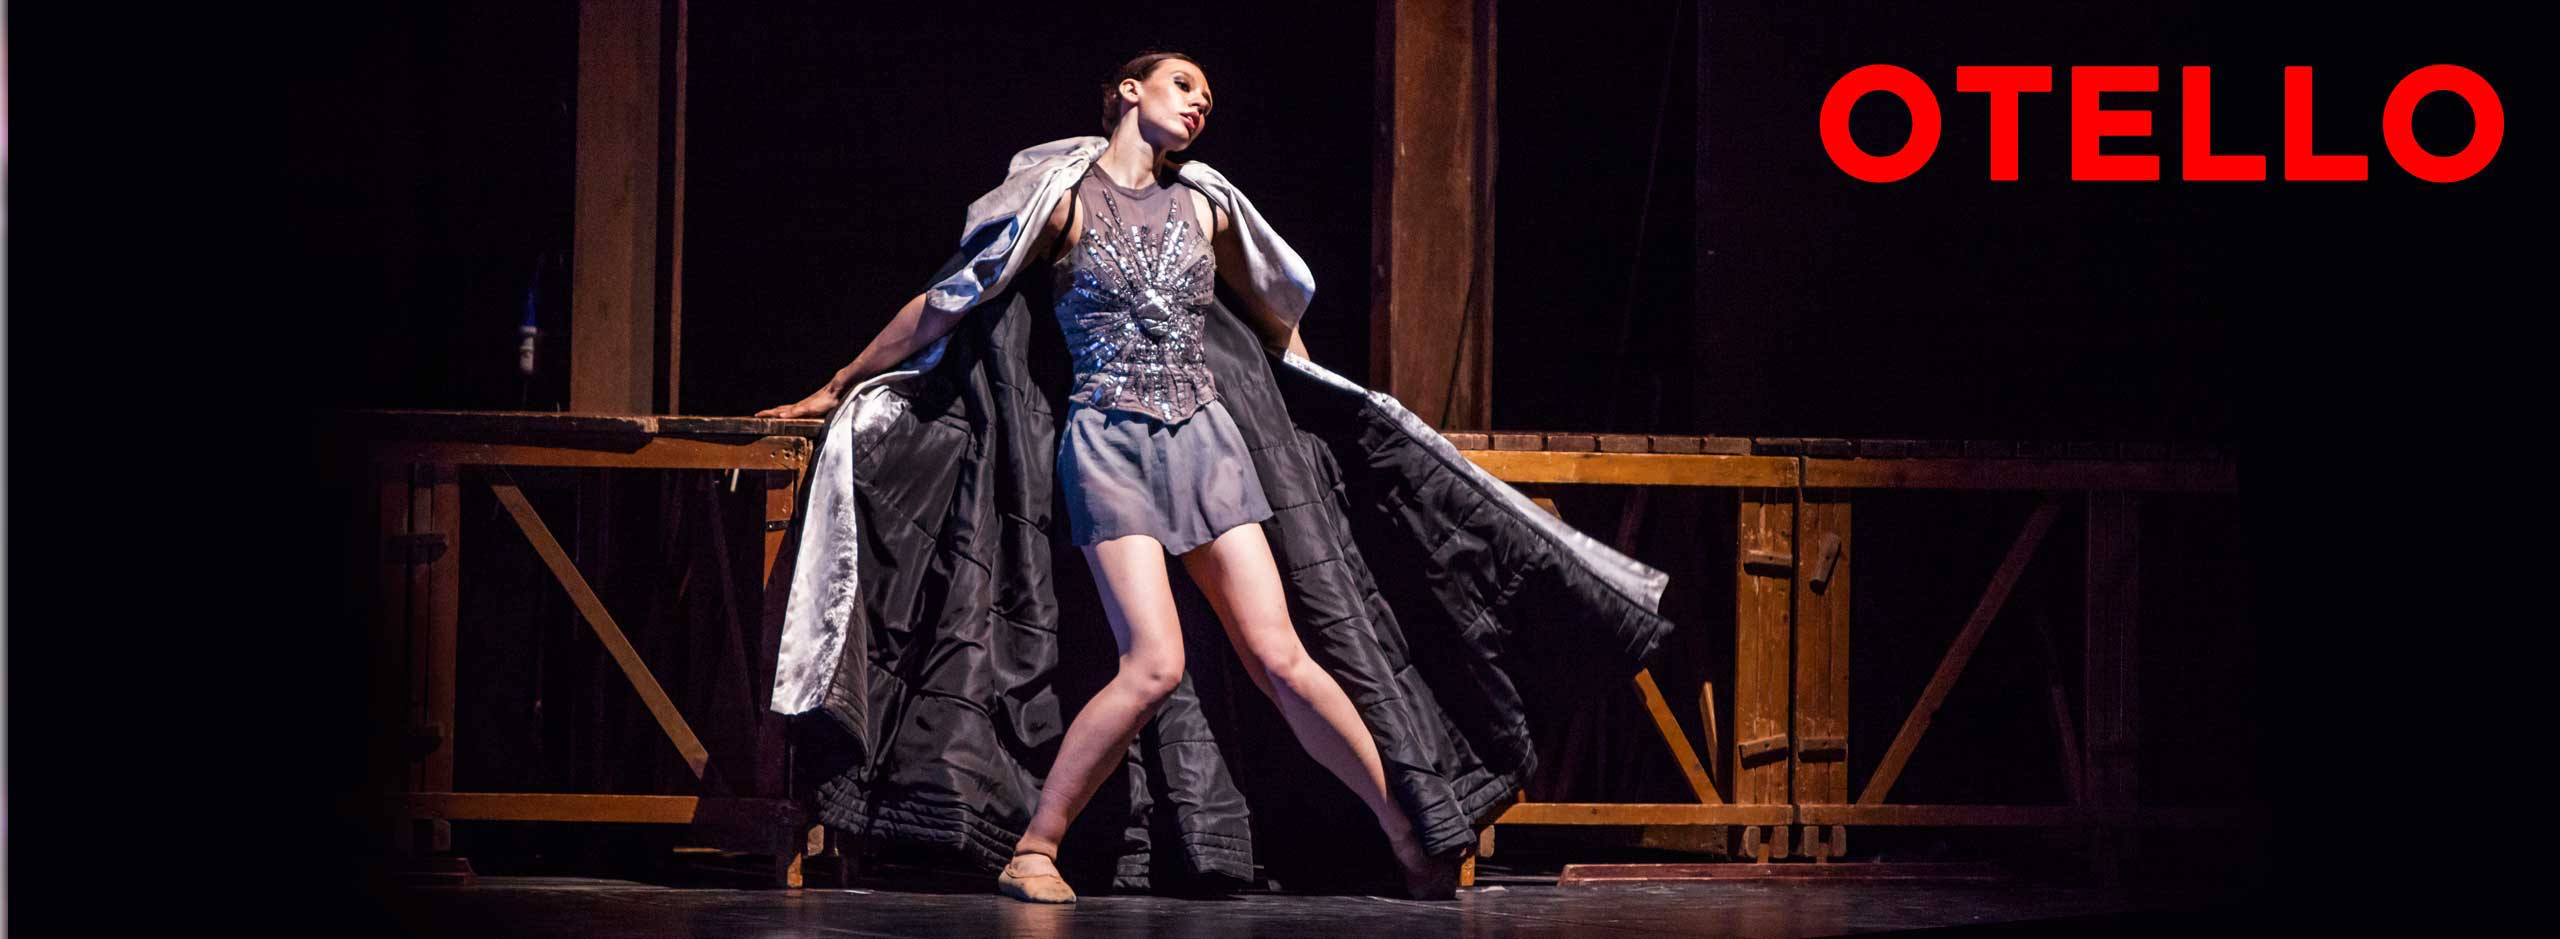 Balletto di Roma | Otello in Tour 2019